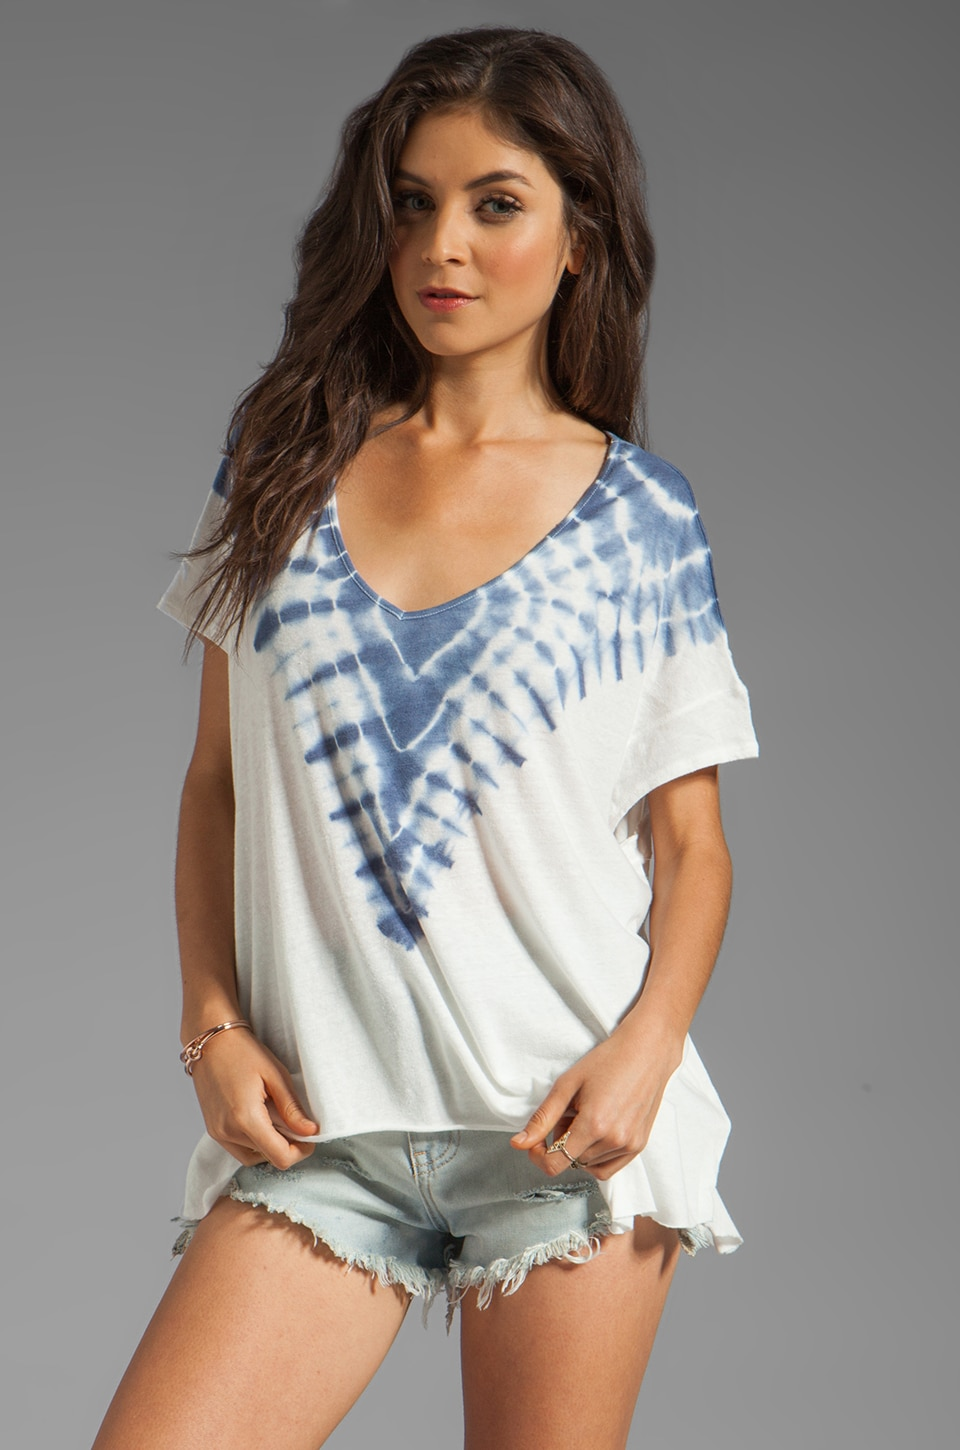 Free People Double Team Tee in Ivory/Navy Combo